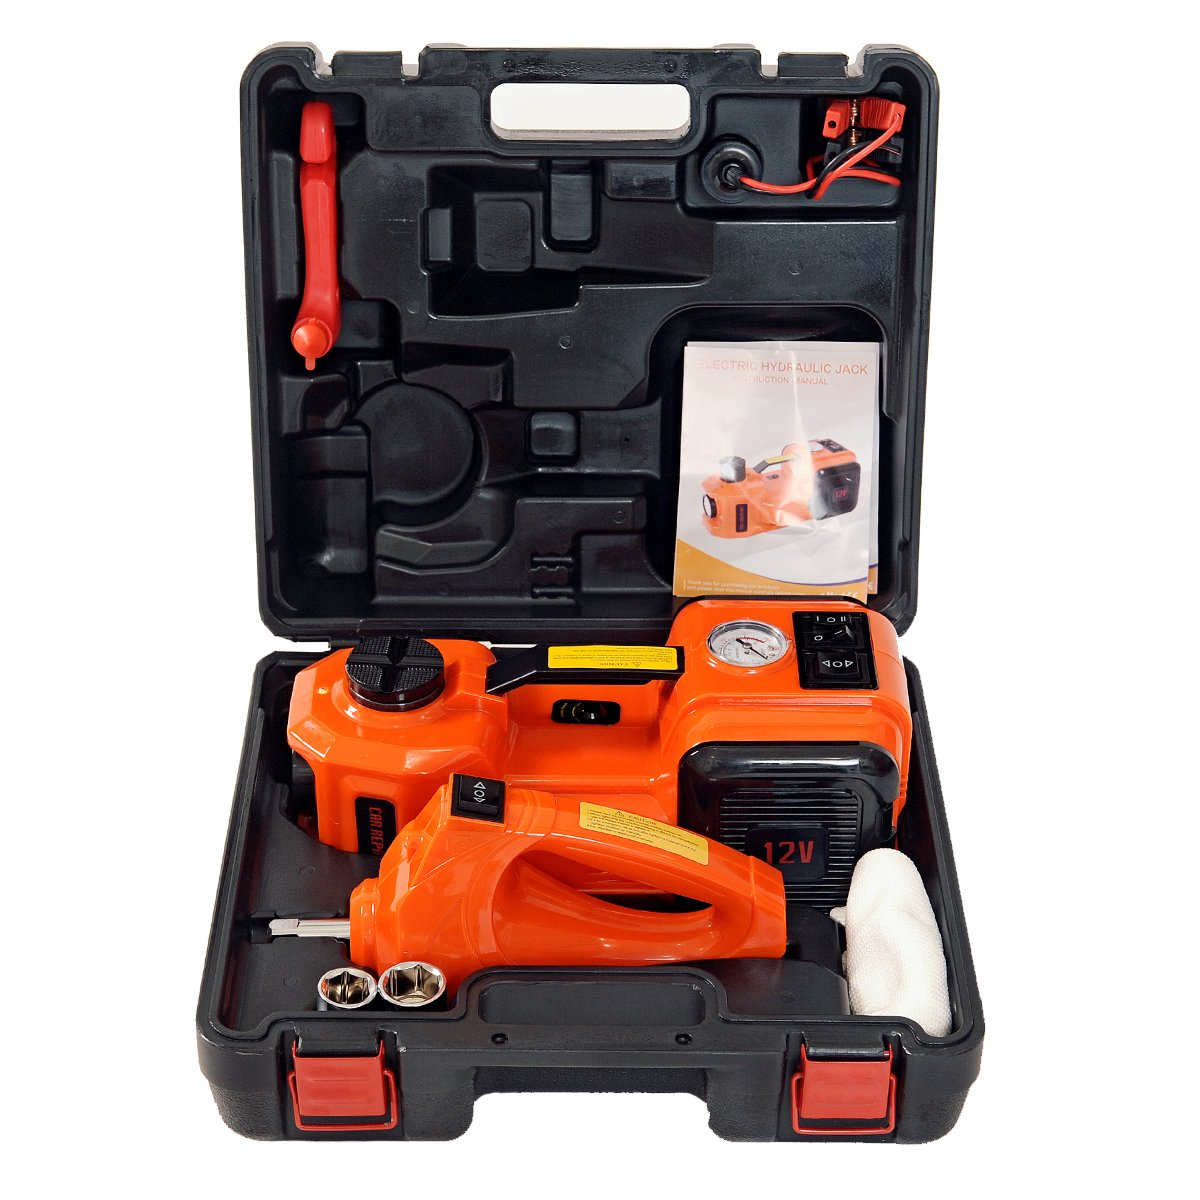 Marchinn 12v Dc 50t11000lb Electric Hydraulic Floor Telephone Wiring Tool Moreover Work Punch Down Extension Jack And Tire Inflator Pump Led Flashlight 3 In 1 Set With Impact Wrench Car Repair Kit Automotive